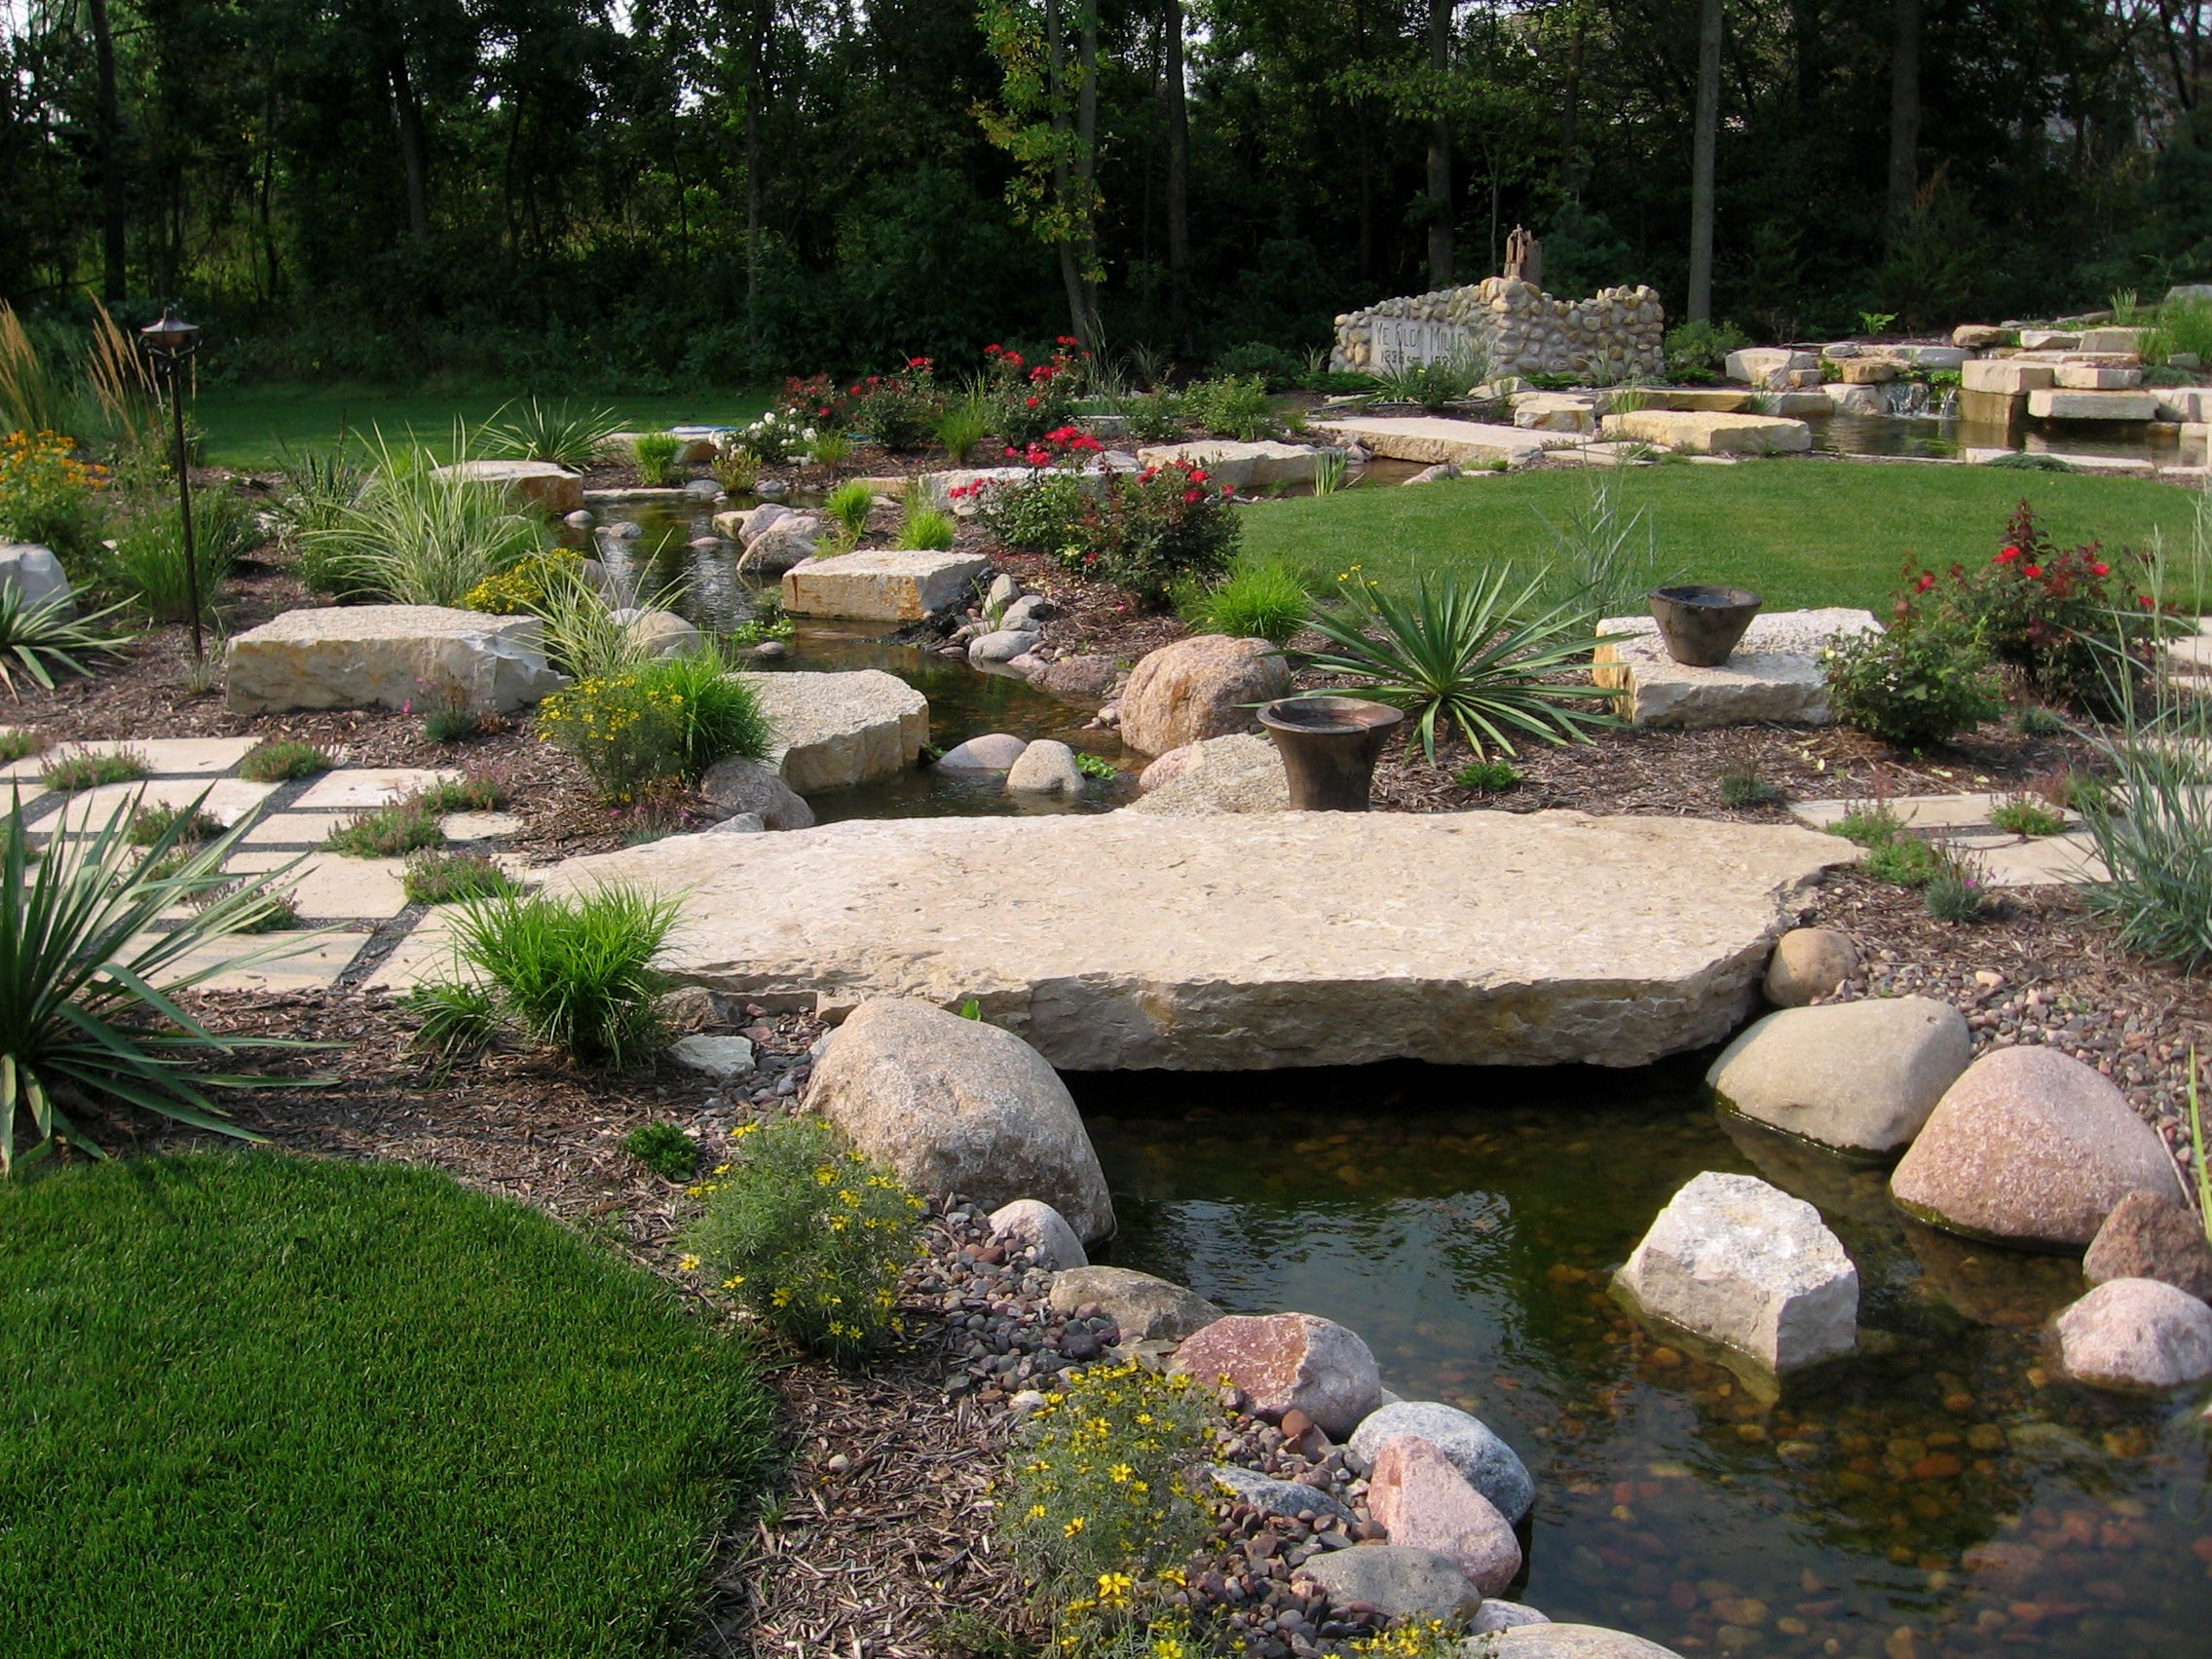 This 195-foot-long stream meanders through a backyard and flows into some woods, giving the illusion that the stream continues on for a distance. It is built out of granite boulders with Lannon stone accents and features a large stone bridge that the homeowners can cross over to get to a patio with a fire pit.